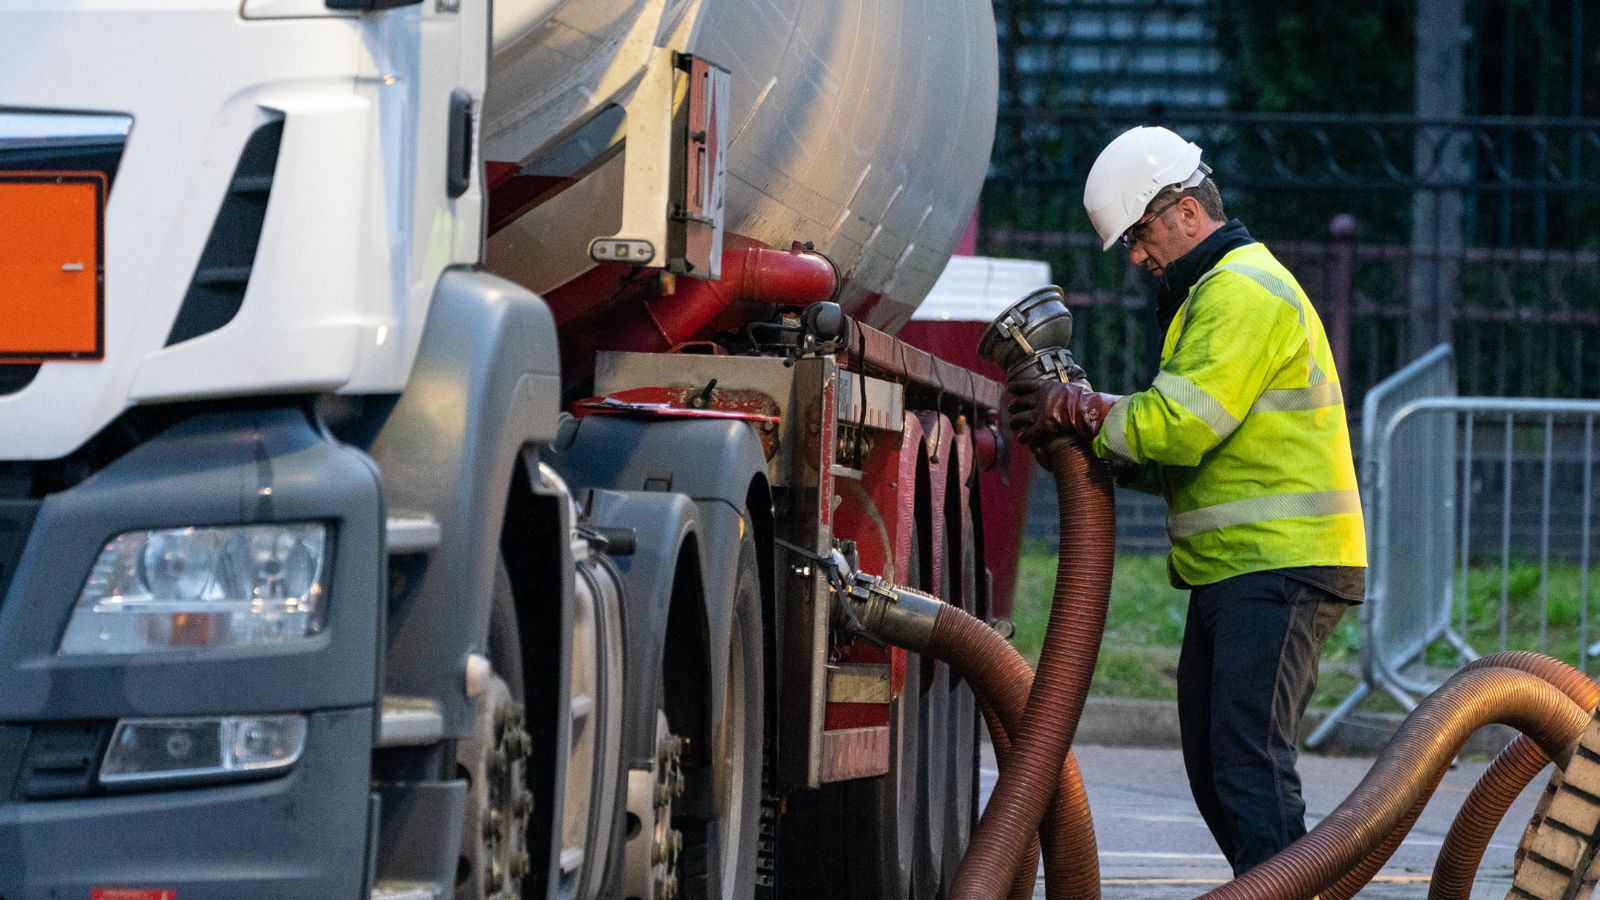 Petrol station stocks 'at highest level since May' after panic-buying frenzy